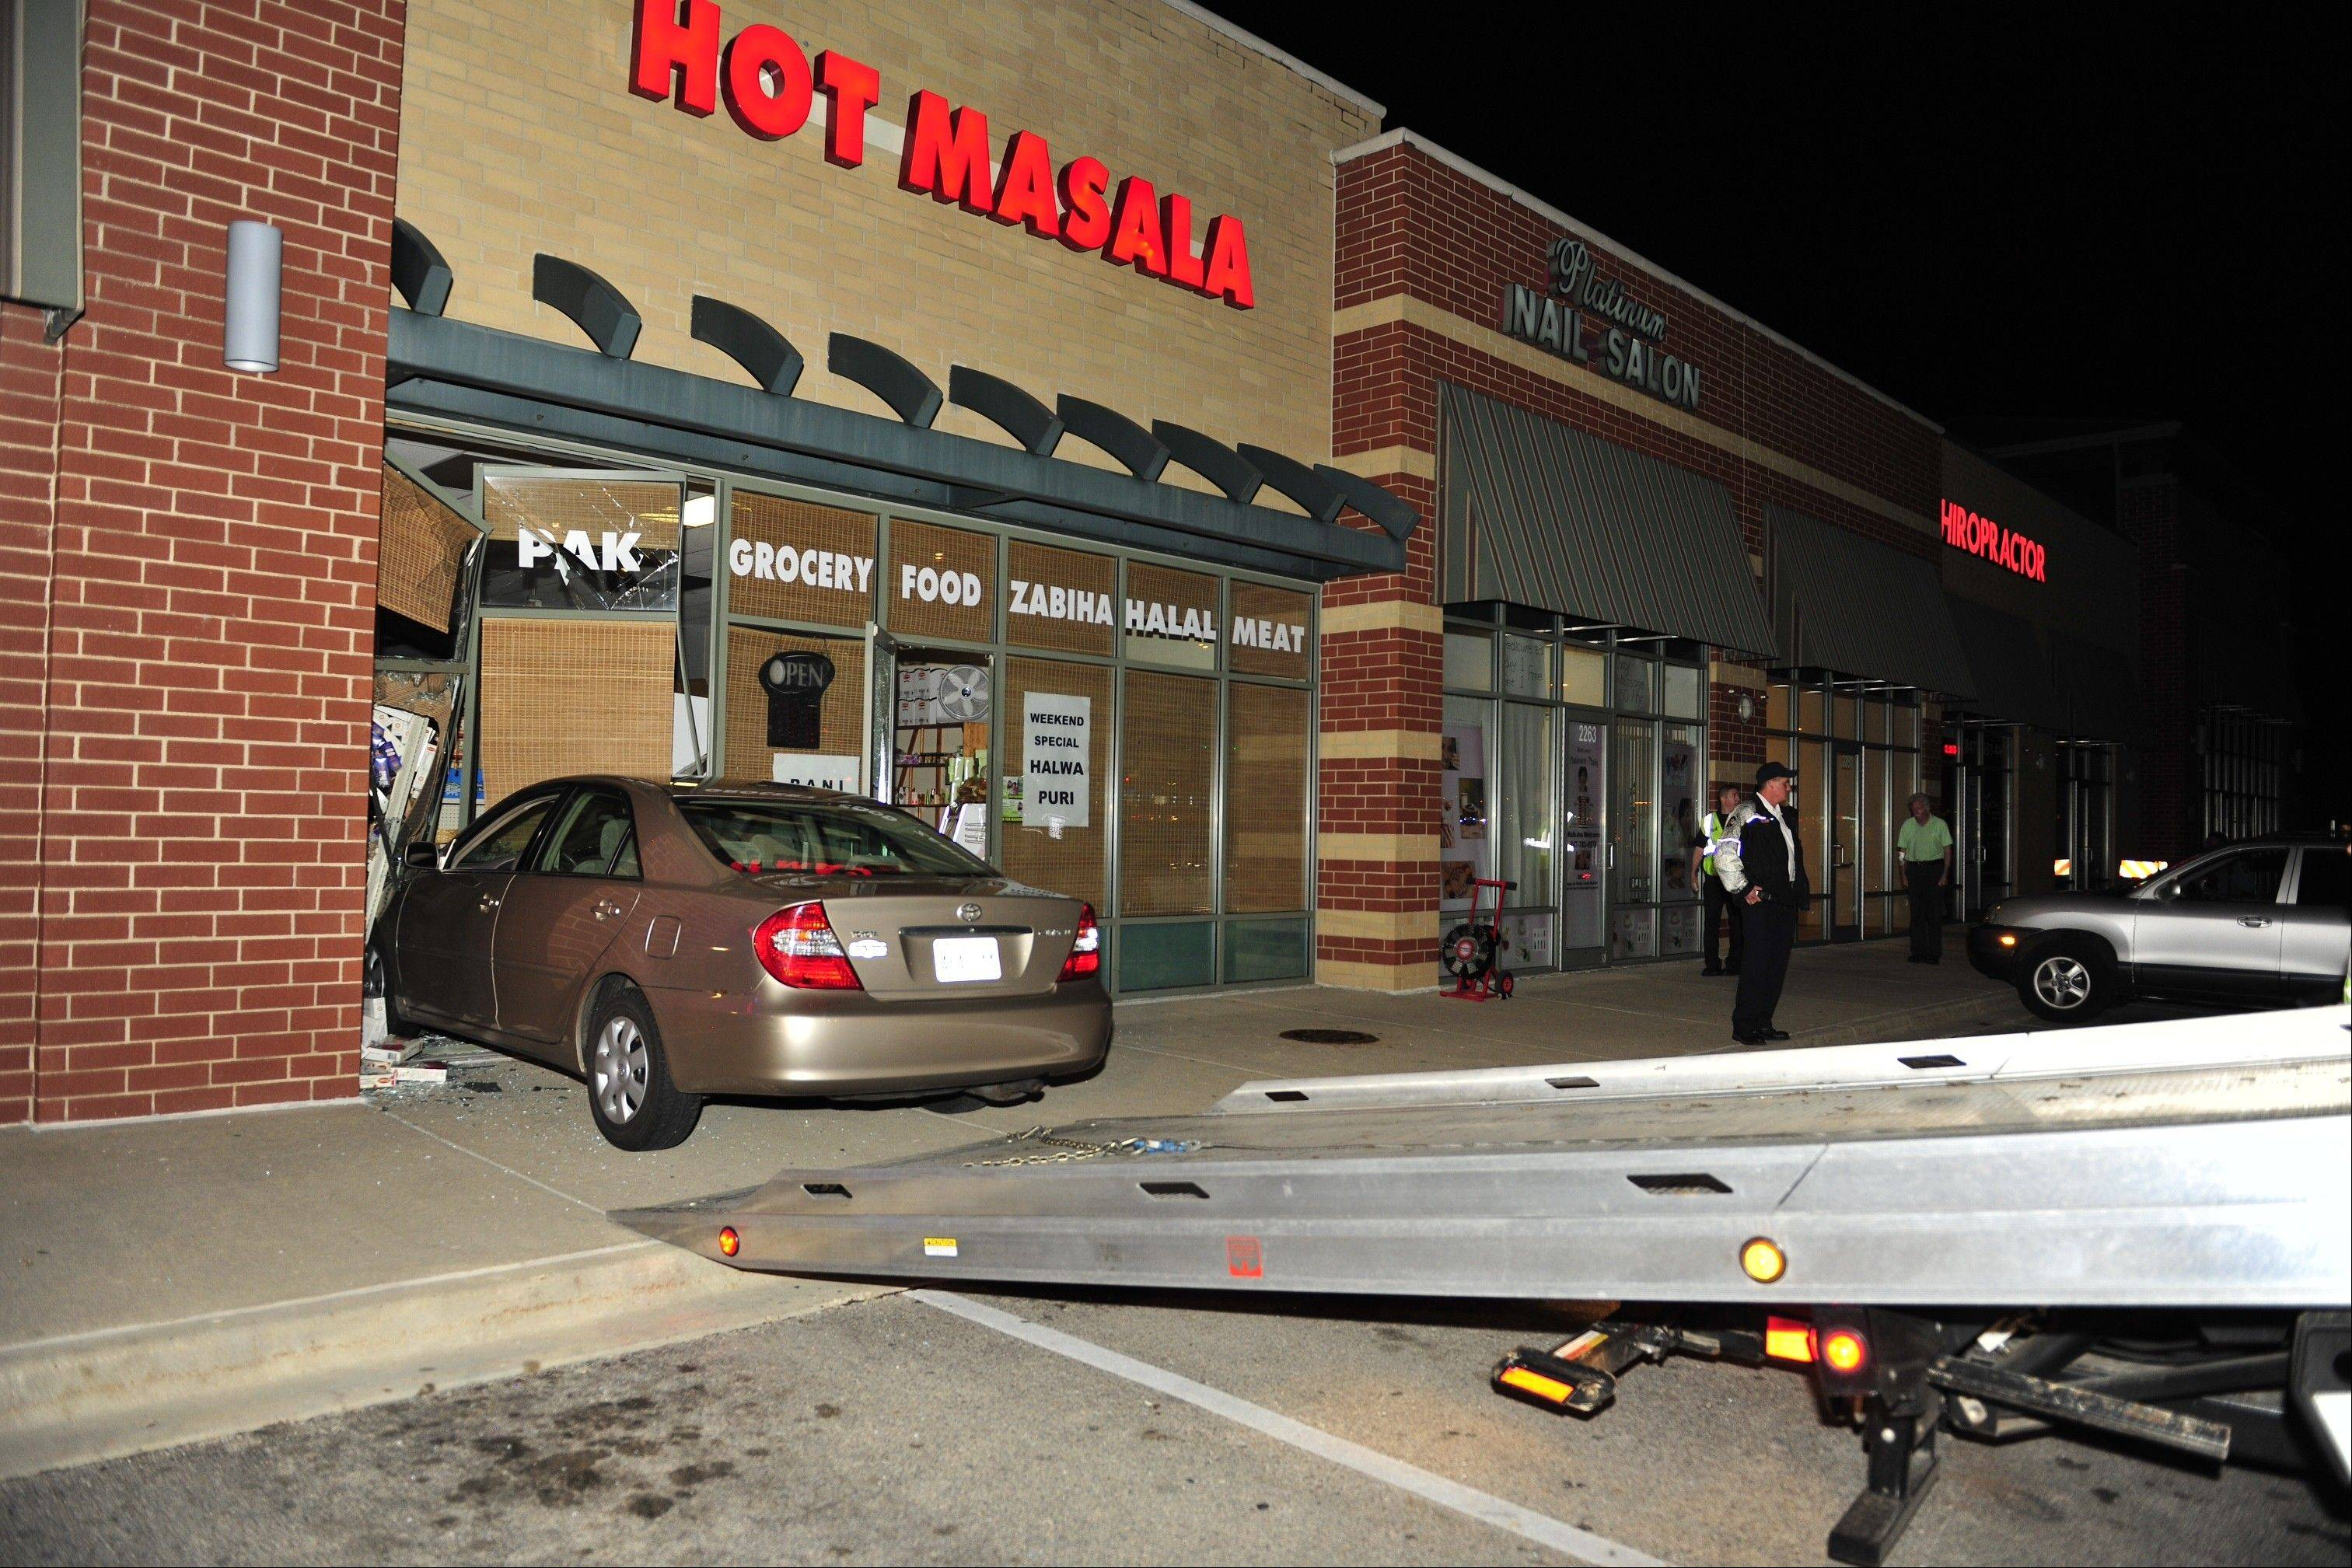 A car crashed into Hot Masala, 2257 Randall Road, on Friday night. The driver was charged with driving under the influence and no injuries were reported.